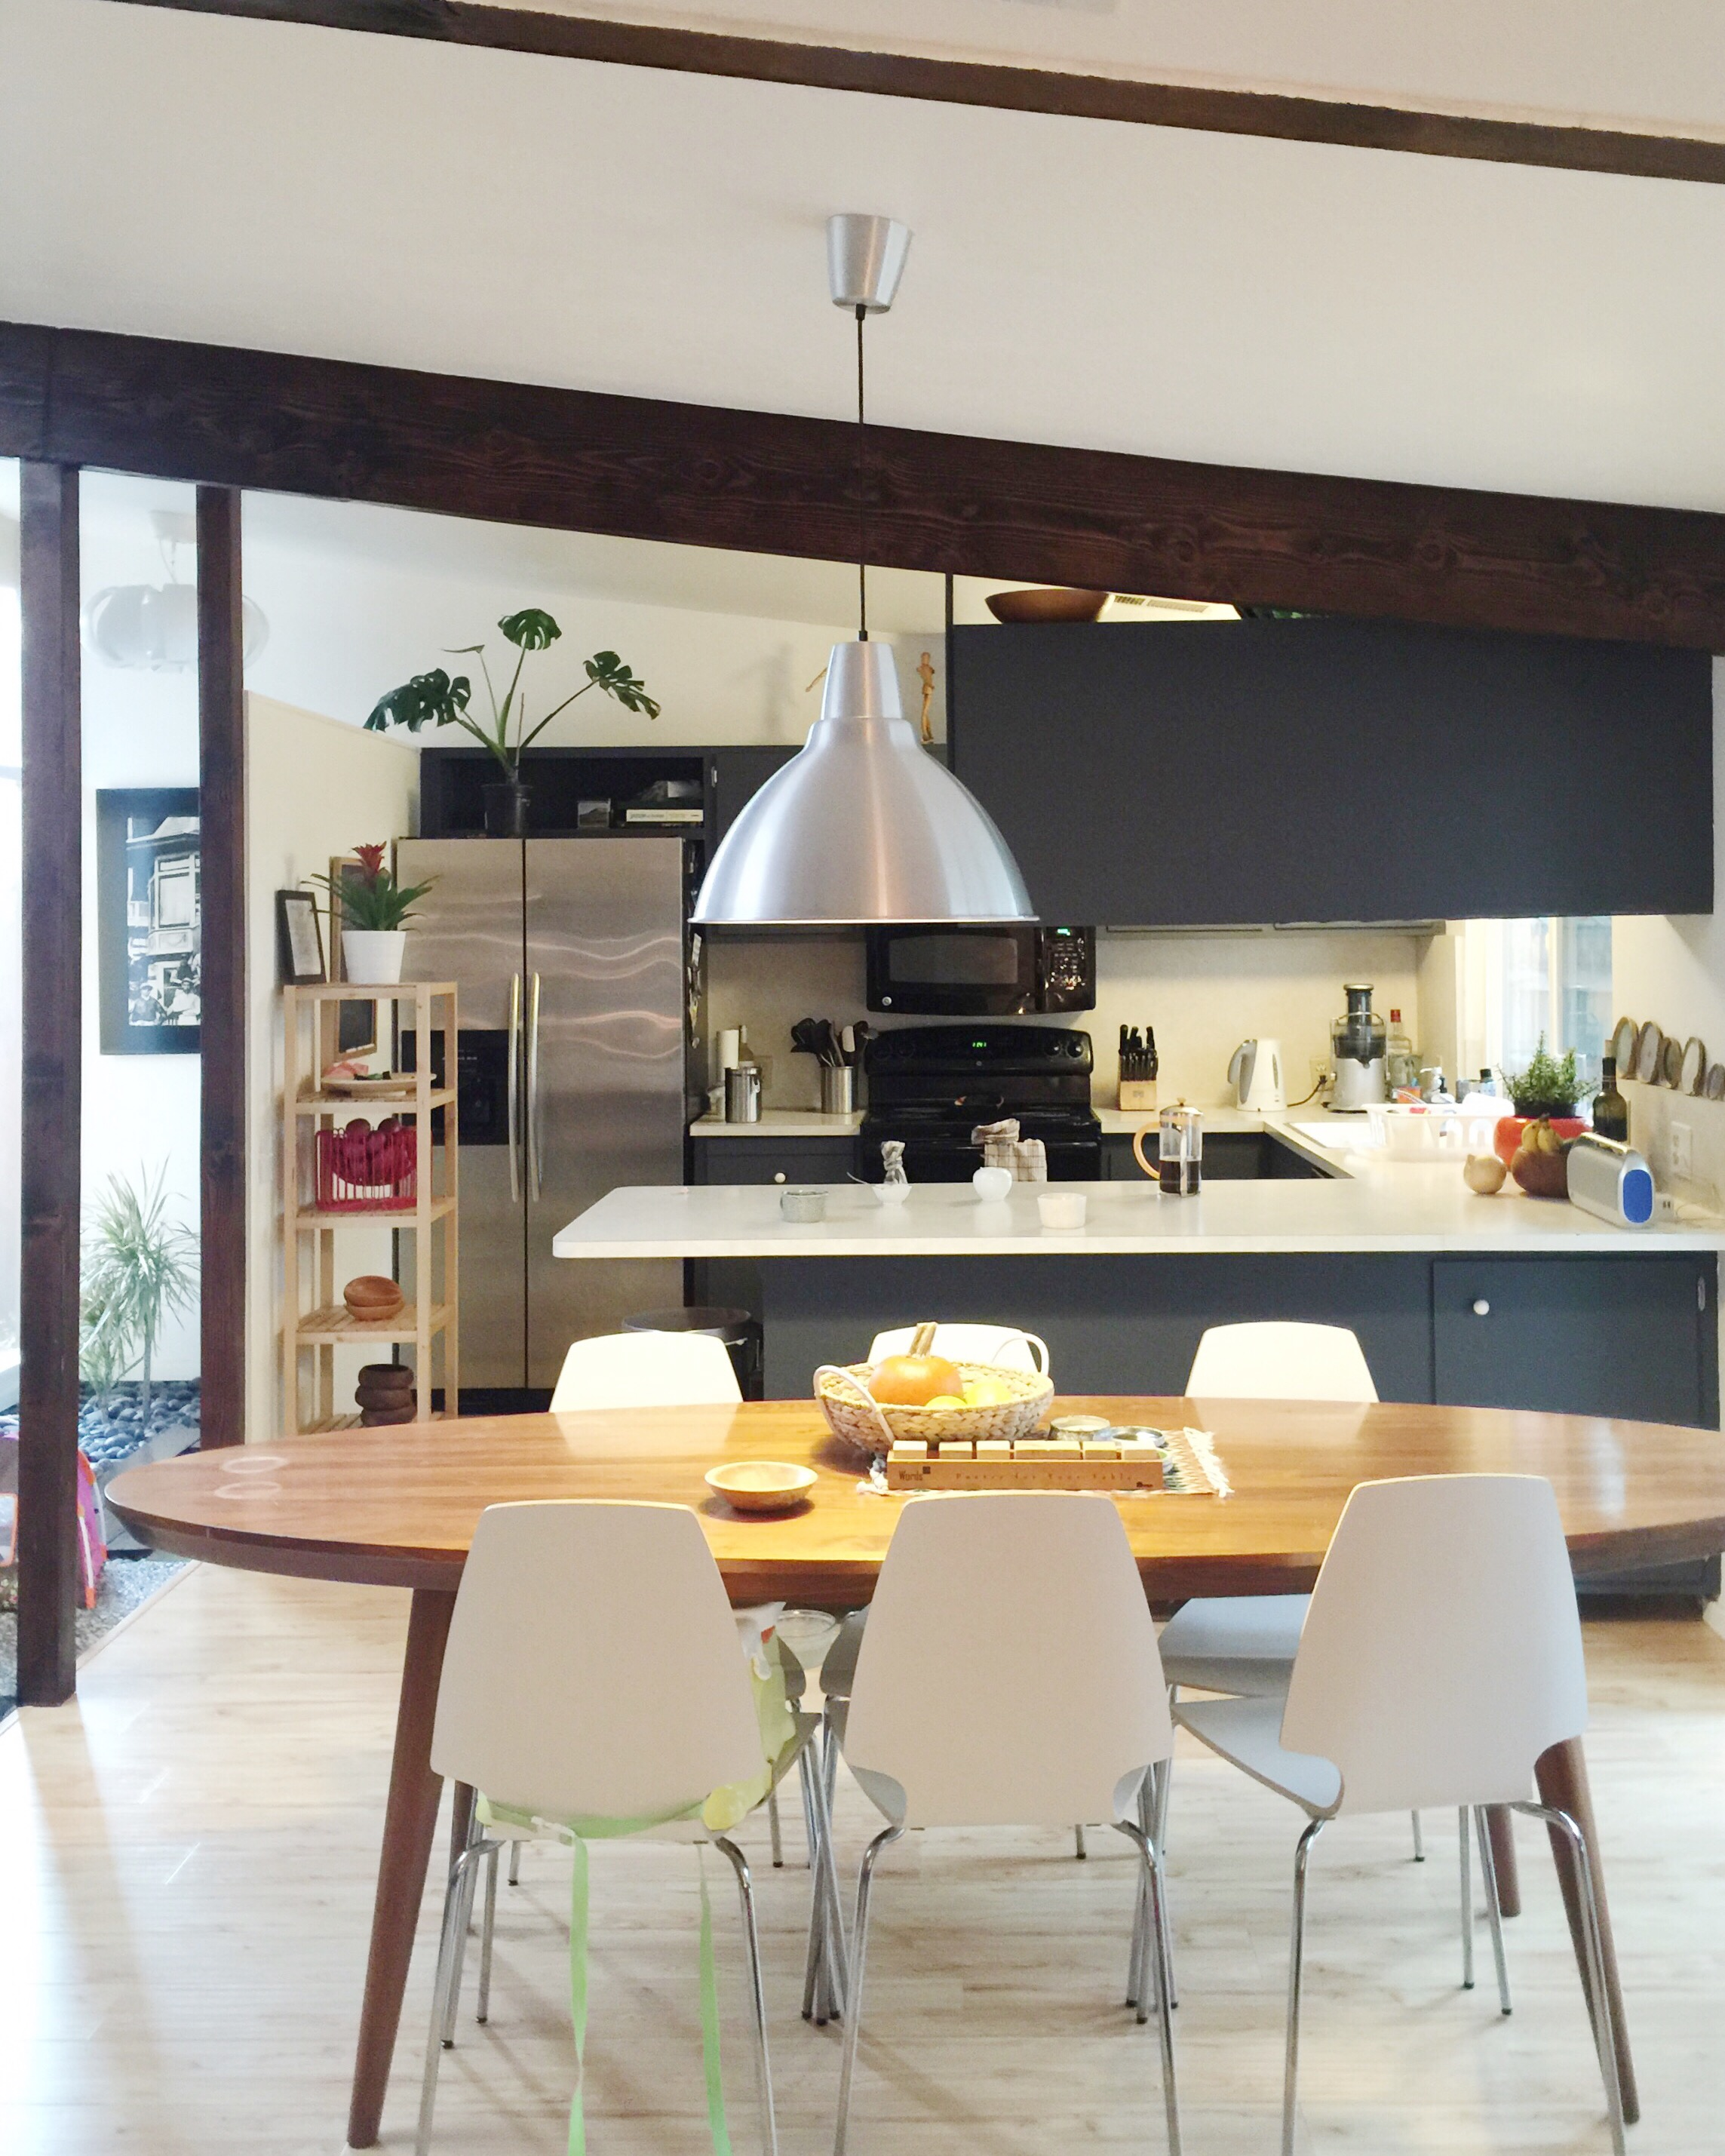 An open kitchen mirrors the family dining table.